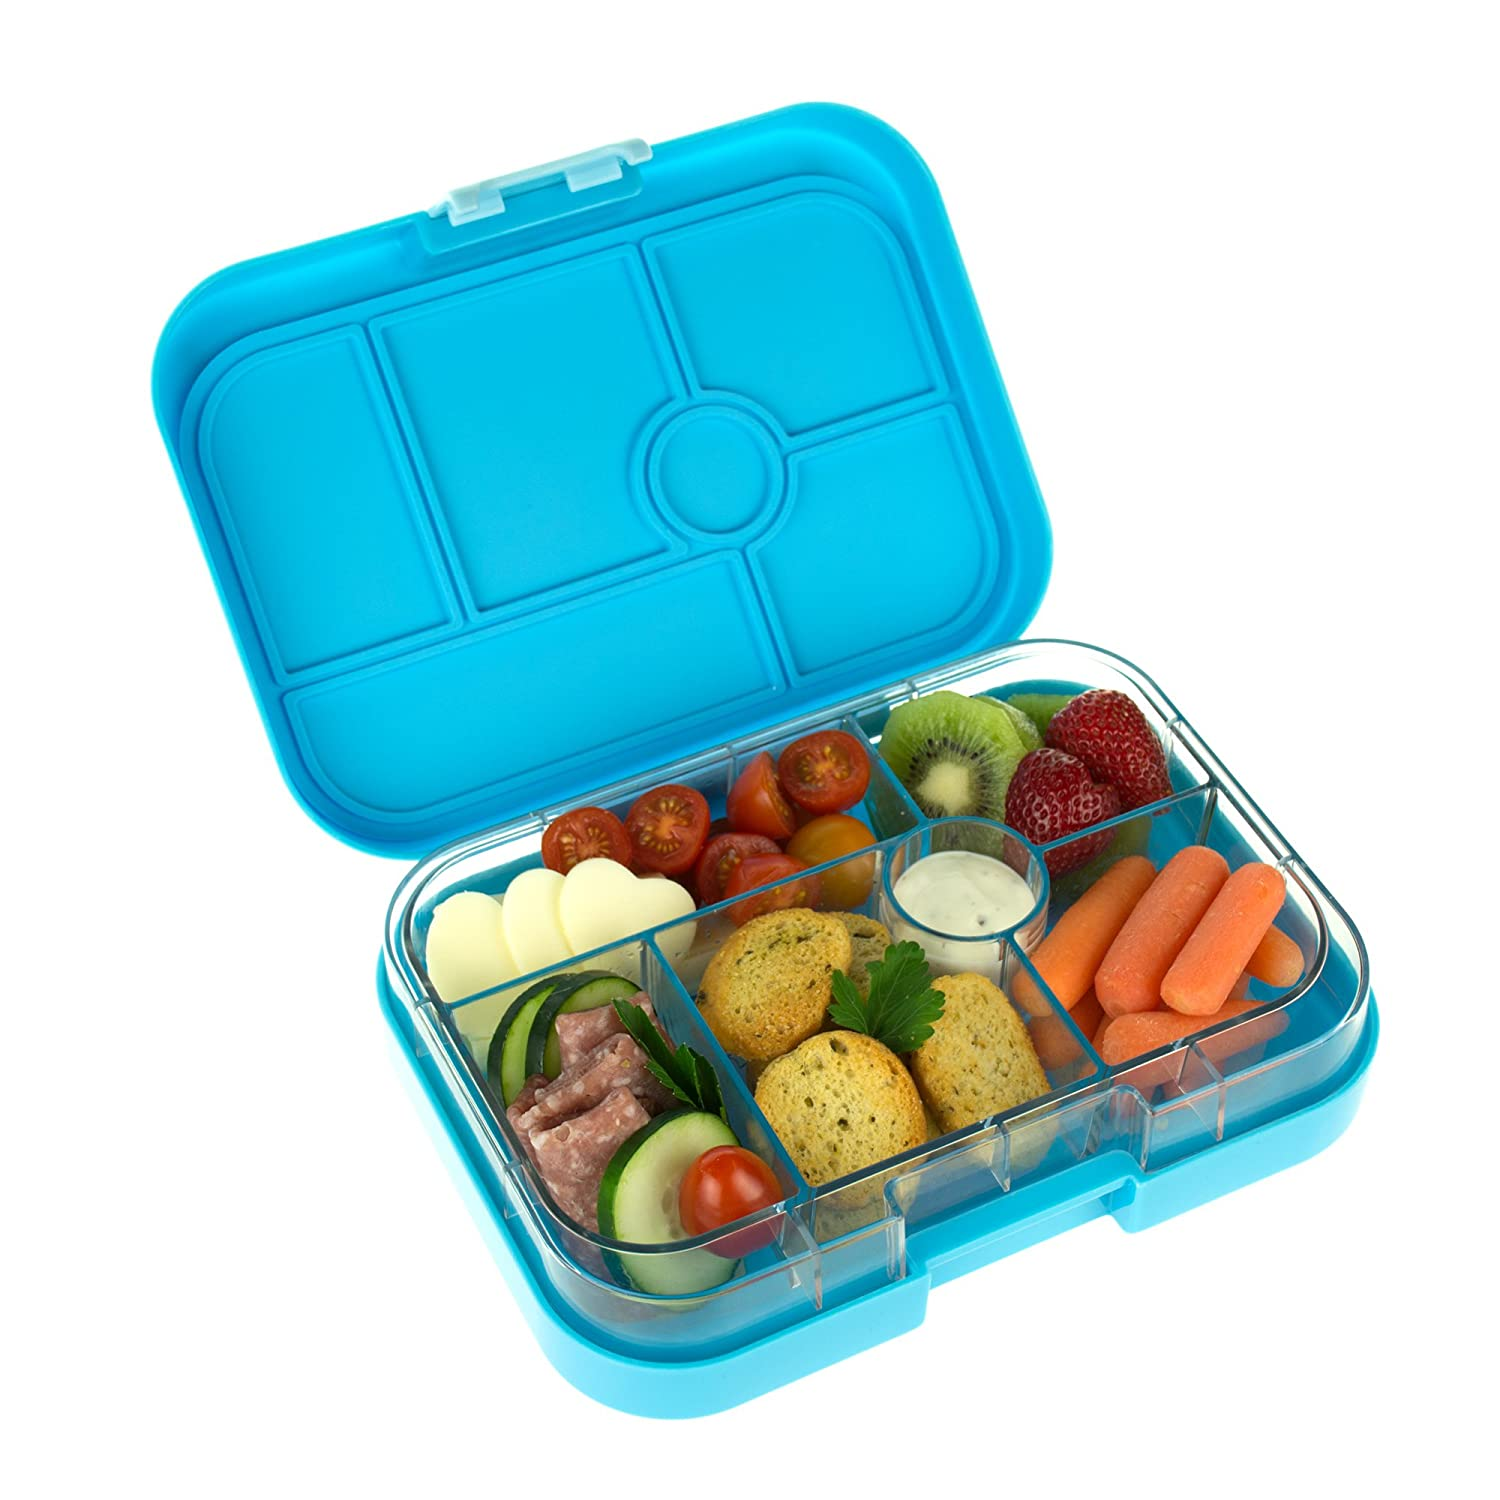 Yumbox Leakproof Bento Lunch Box Container (Gelato Blue) for Kids